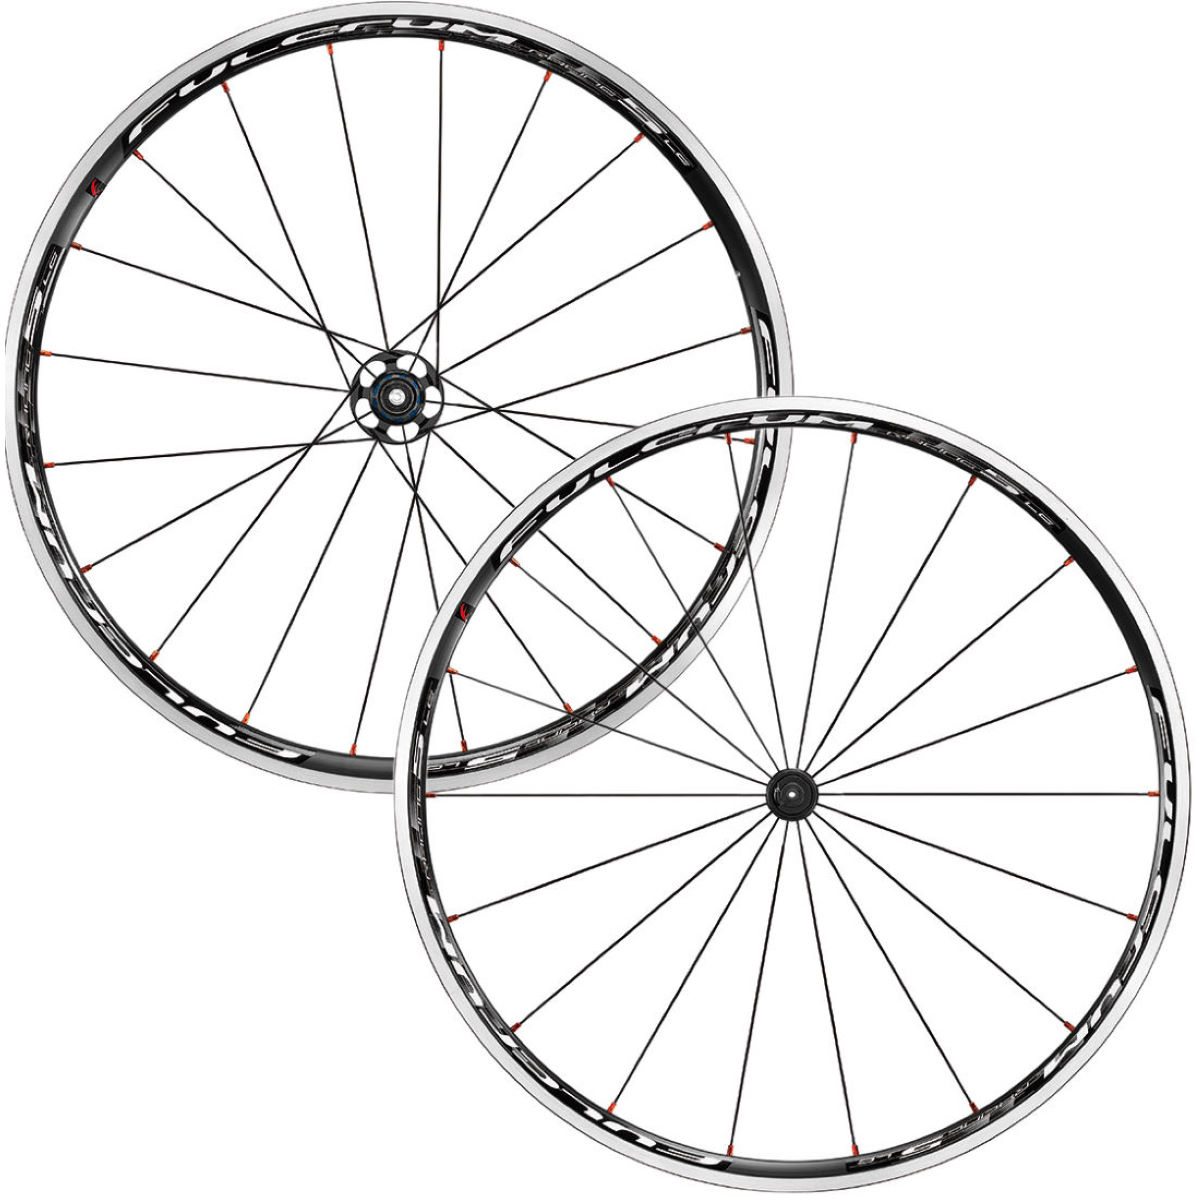 Fulcrum Racing 5 LG Alloy Clincher Wheelset   Performance Wheels